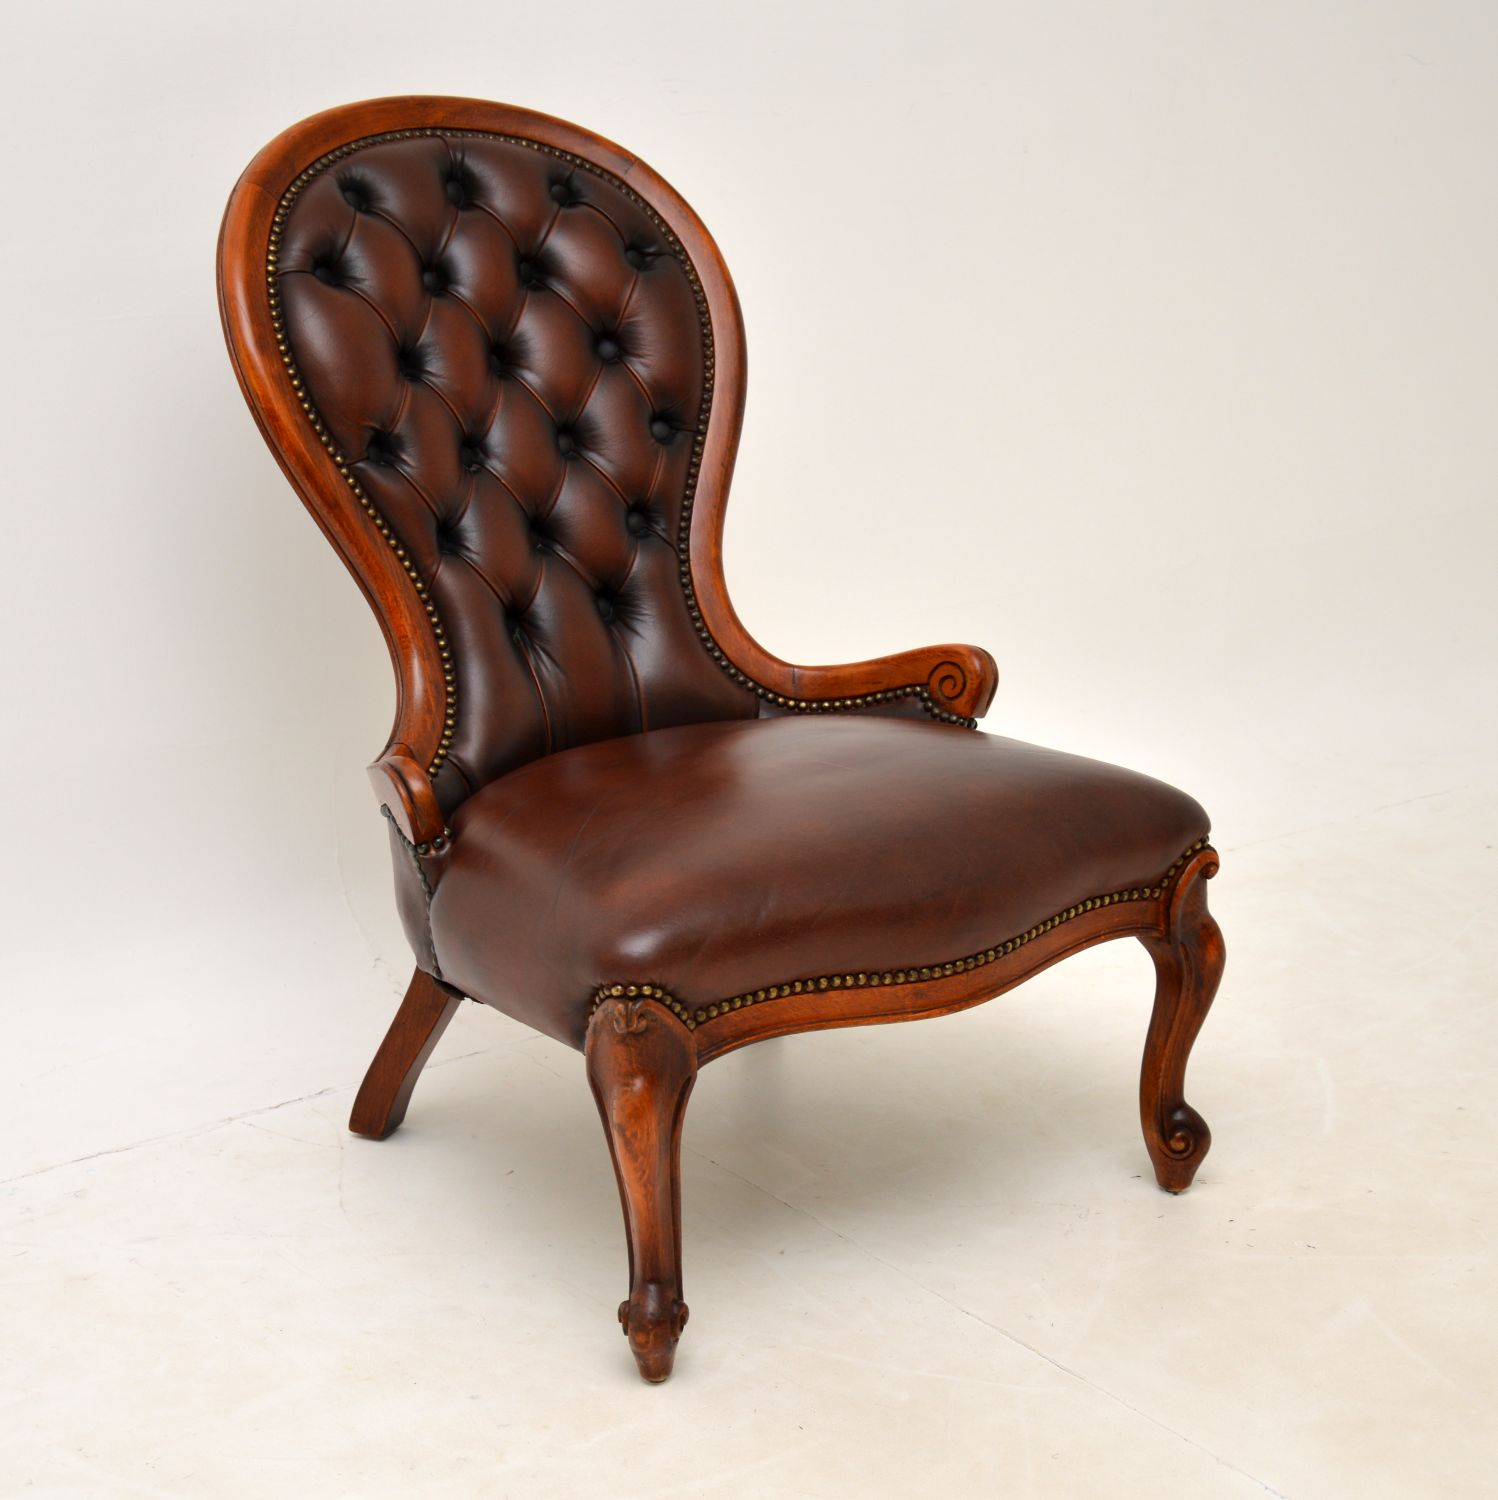 antique victorian spoon back mahogany leather armchair side chair